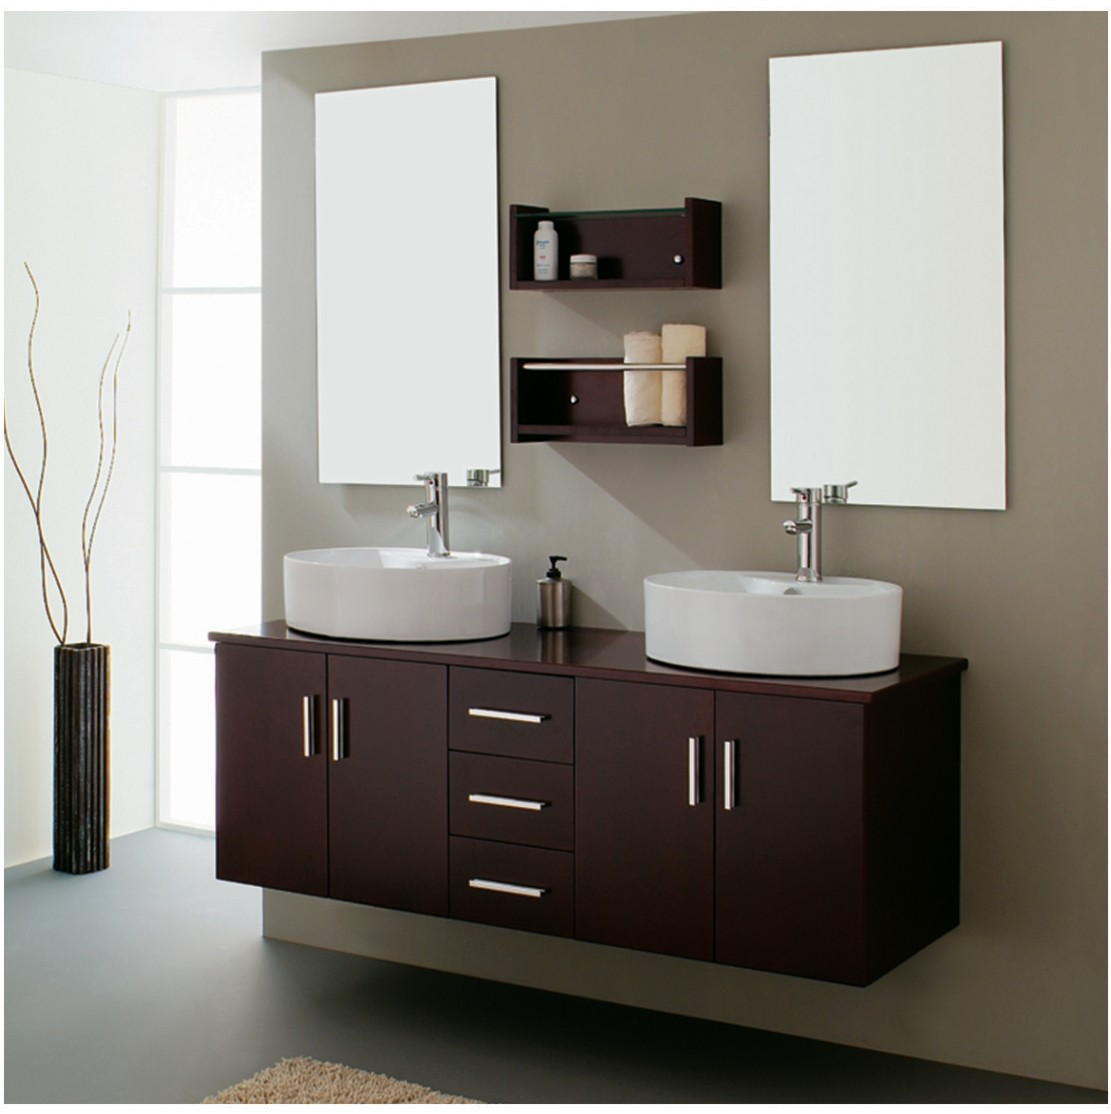 luxury bathroom furniture vanities sink pictures 008